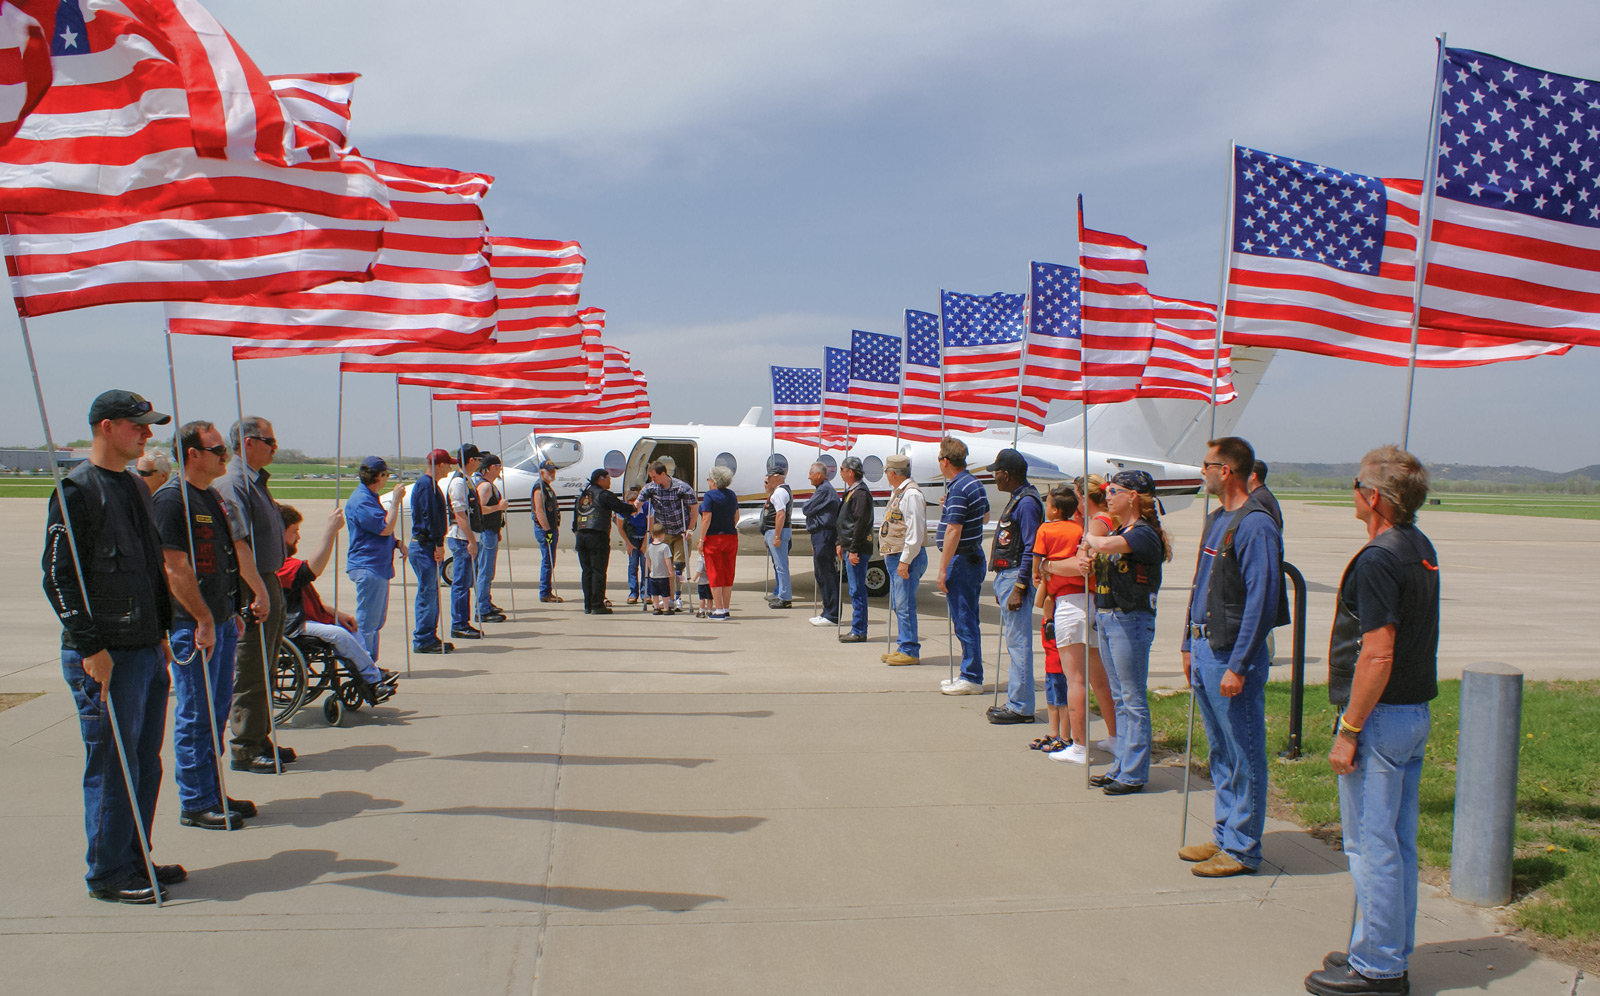 TAMKO's first-ever VAC Hero Flights mission - veteran welcomed home with flags - May 2008